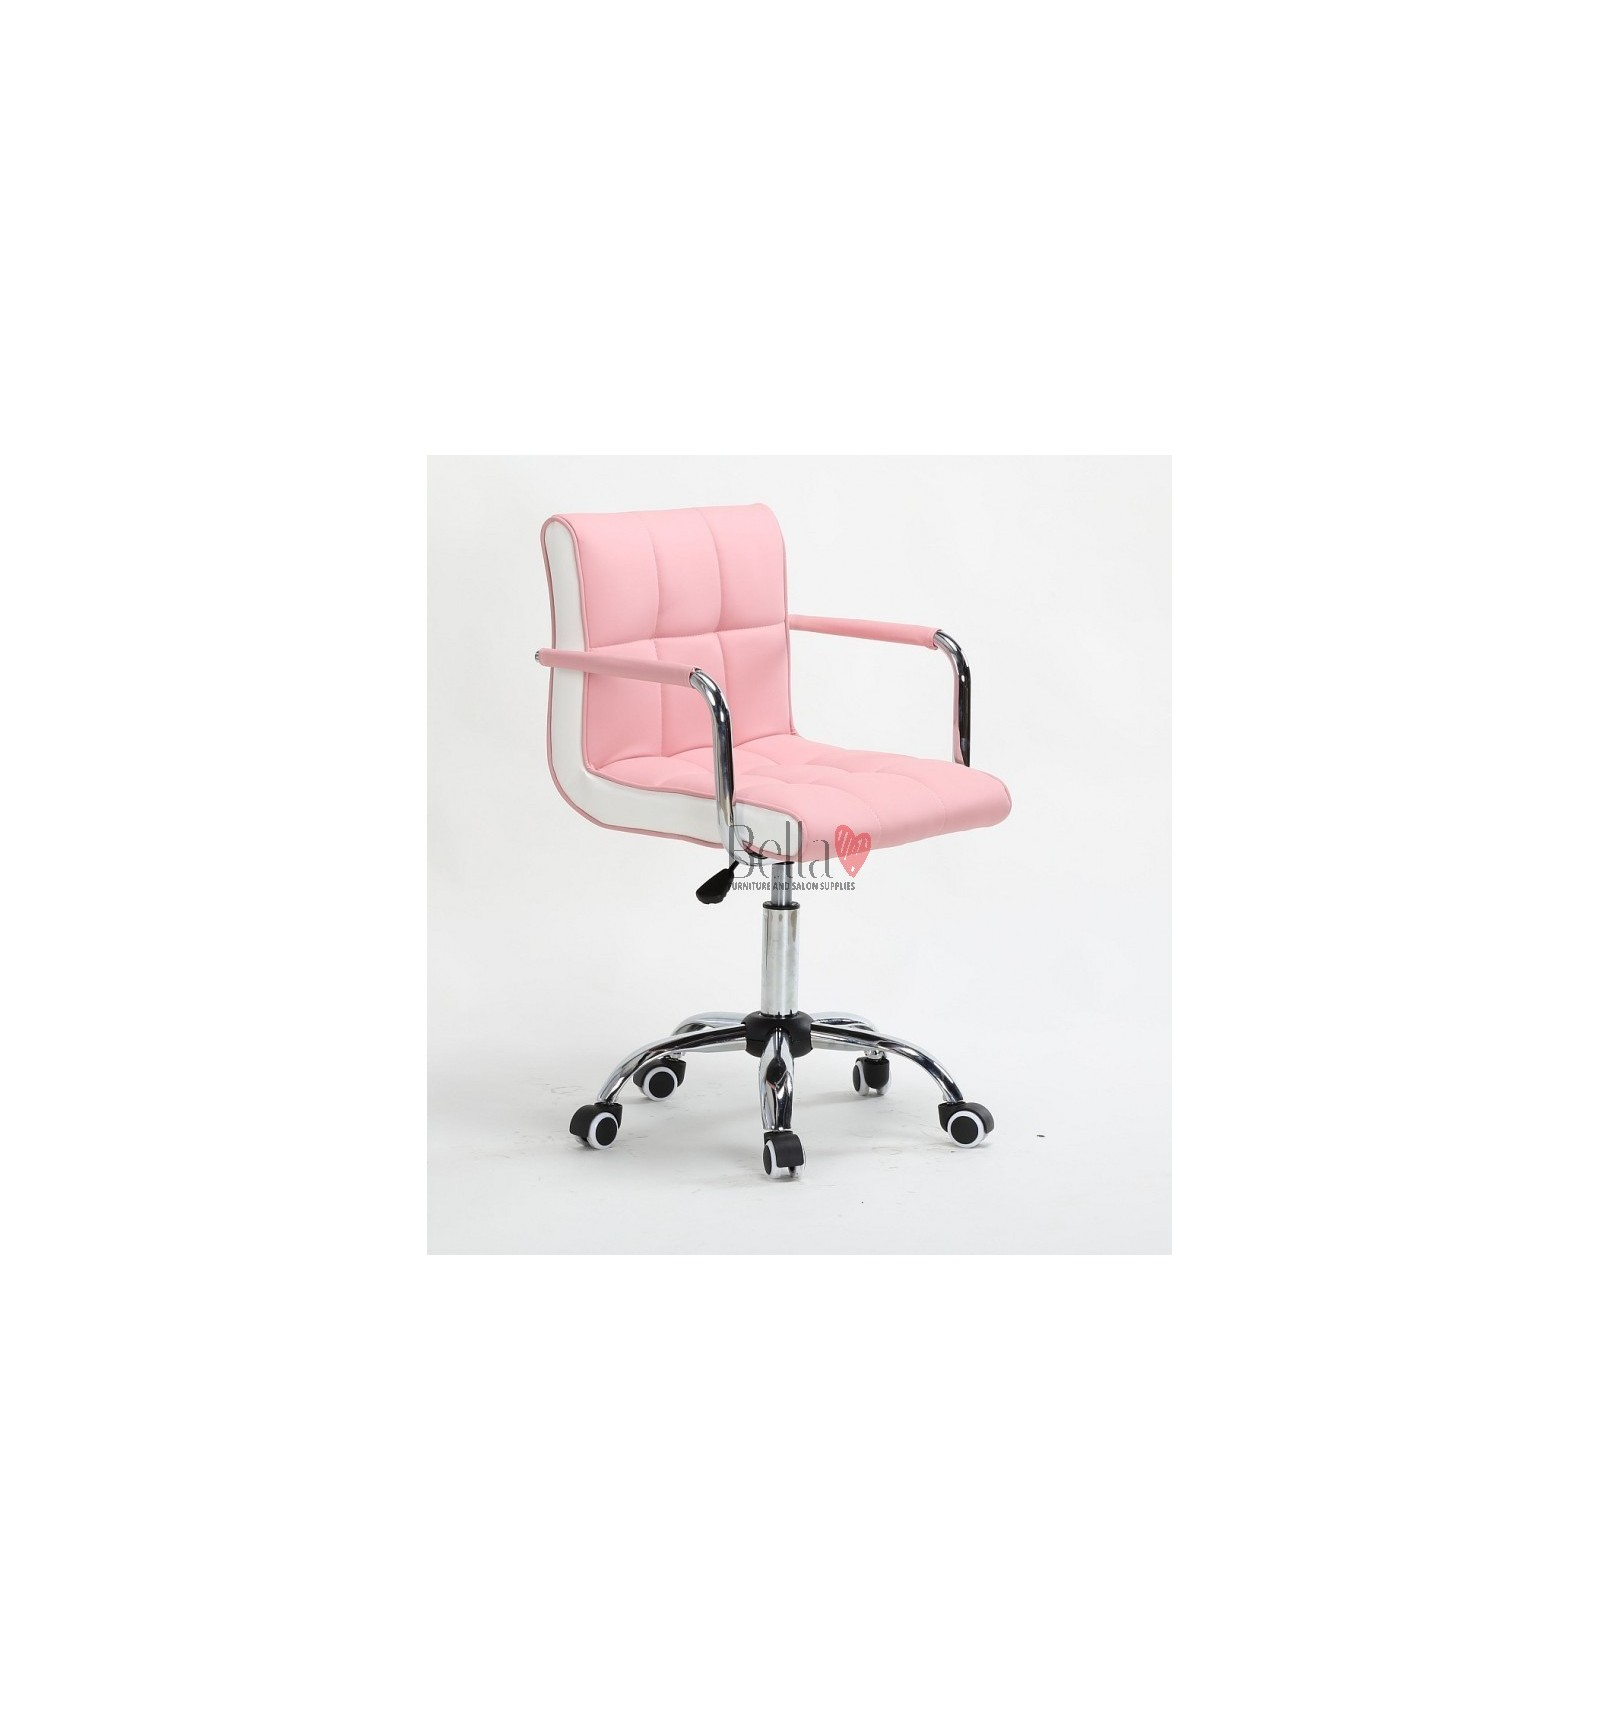 Pink Nail Salon chairs for saleStylish chairs for nail